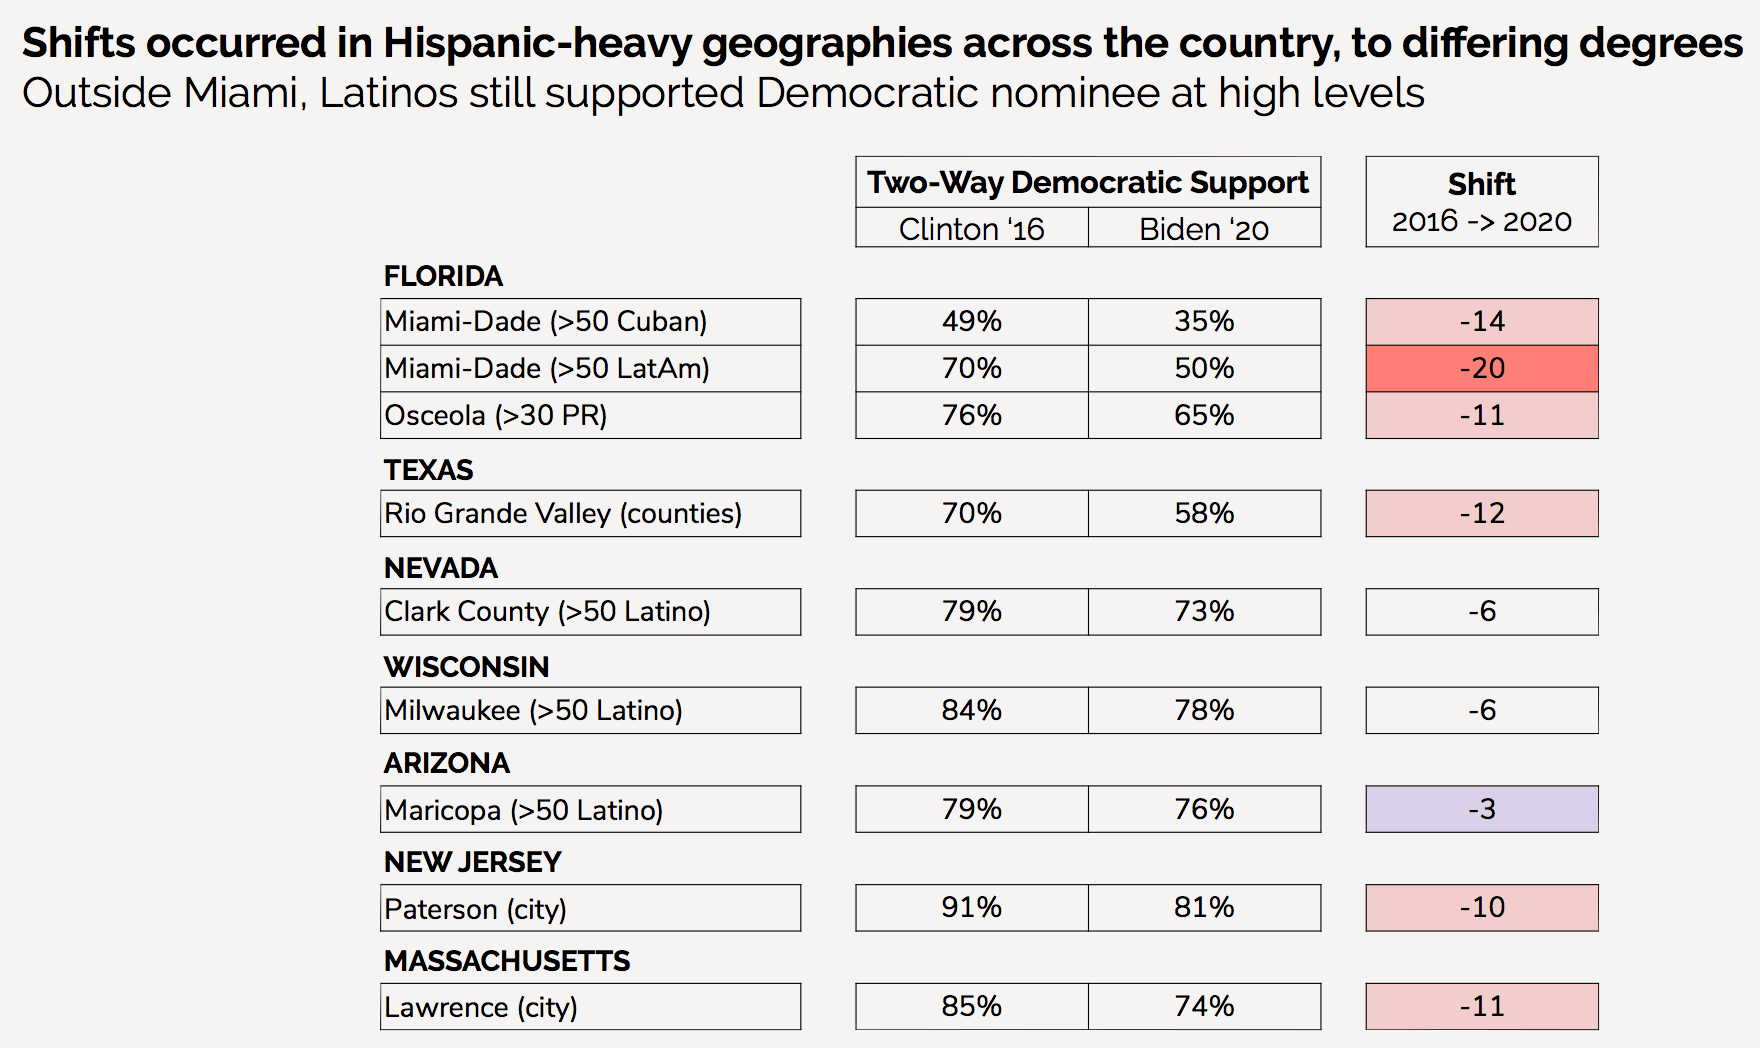 Data: Trump Surged Hispanic Support Mostly with First-Time Swing Voters 1